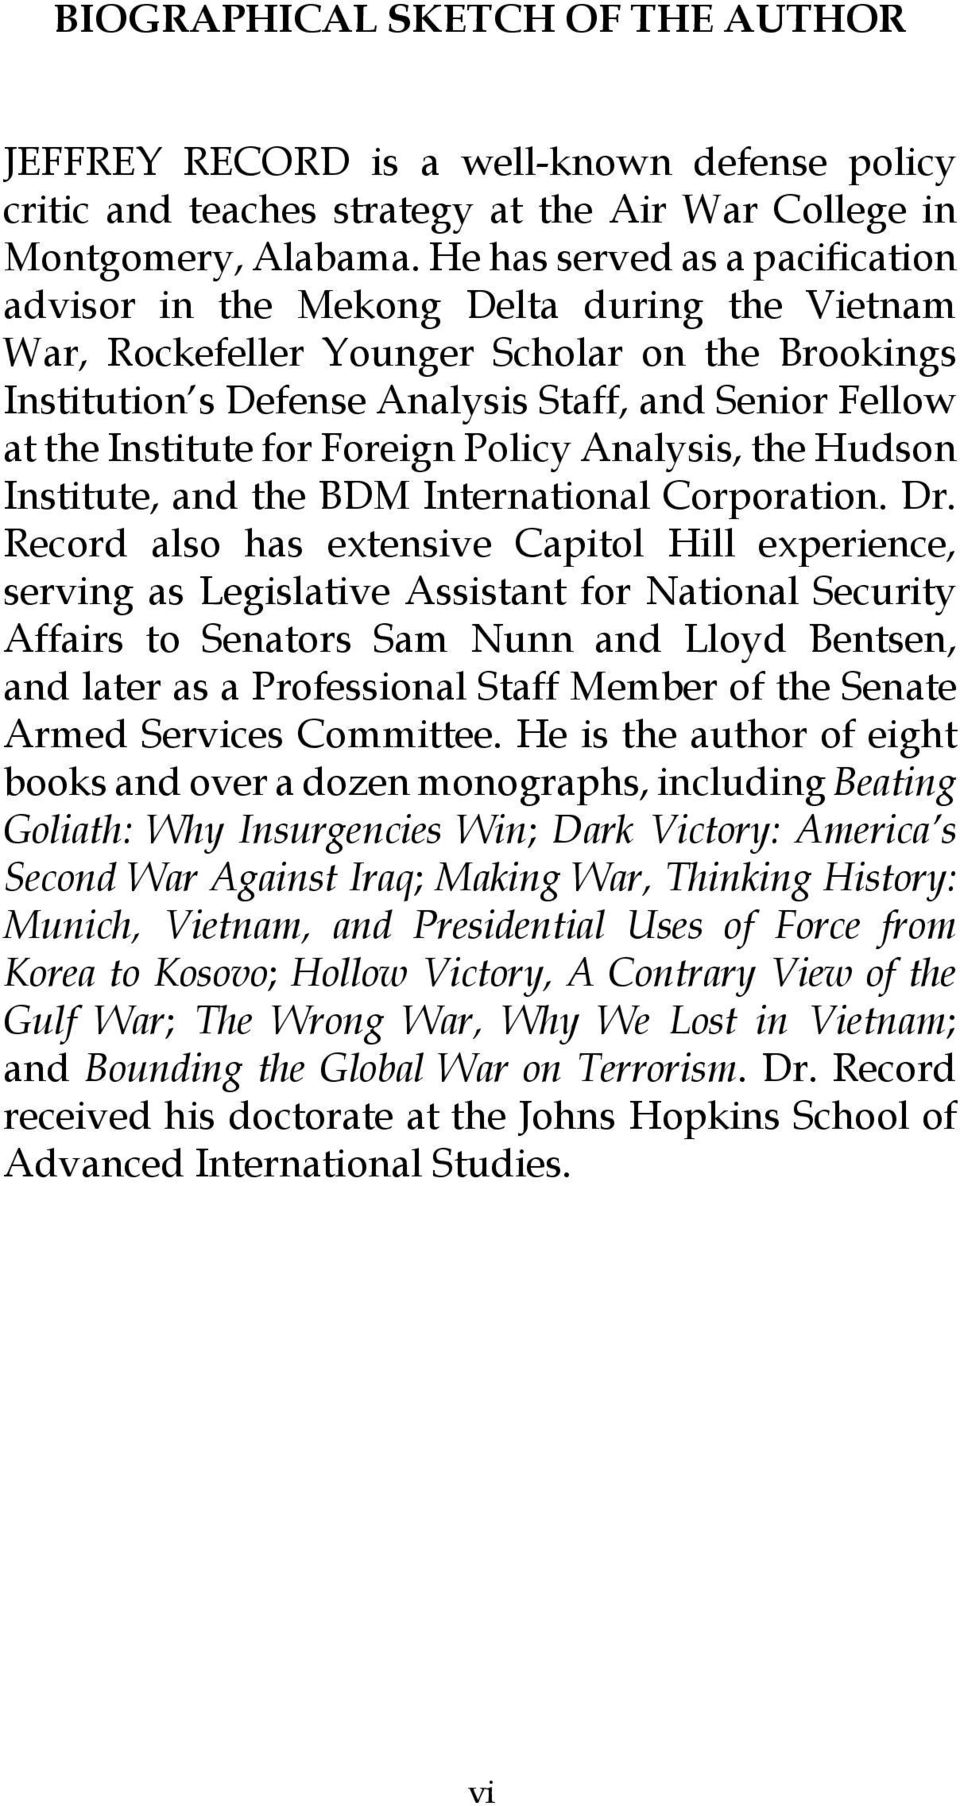 Institute for Foreign Policy Analysis, the Hudson Institute, and the BDM International Corporation. Dr.